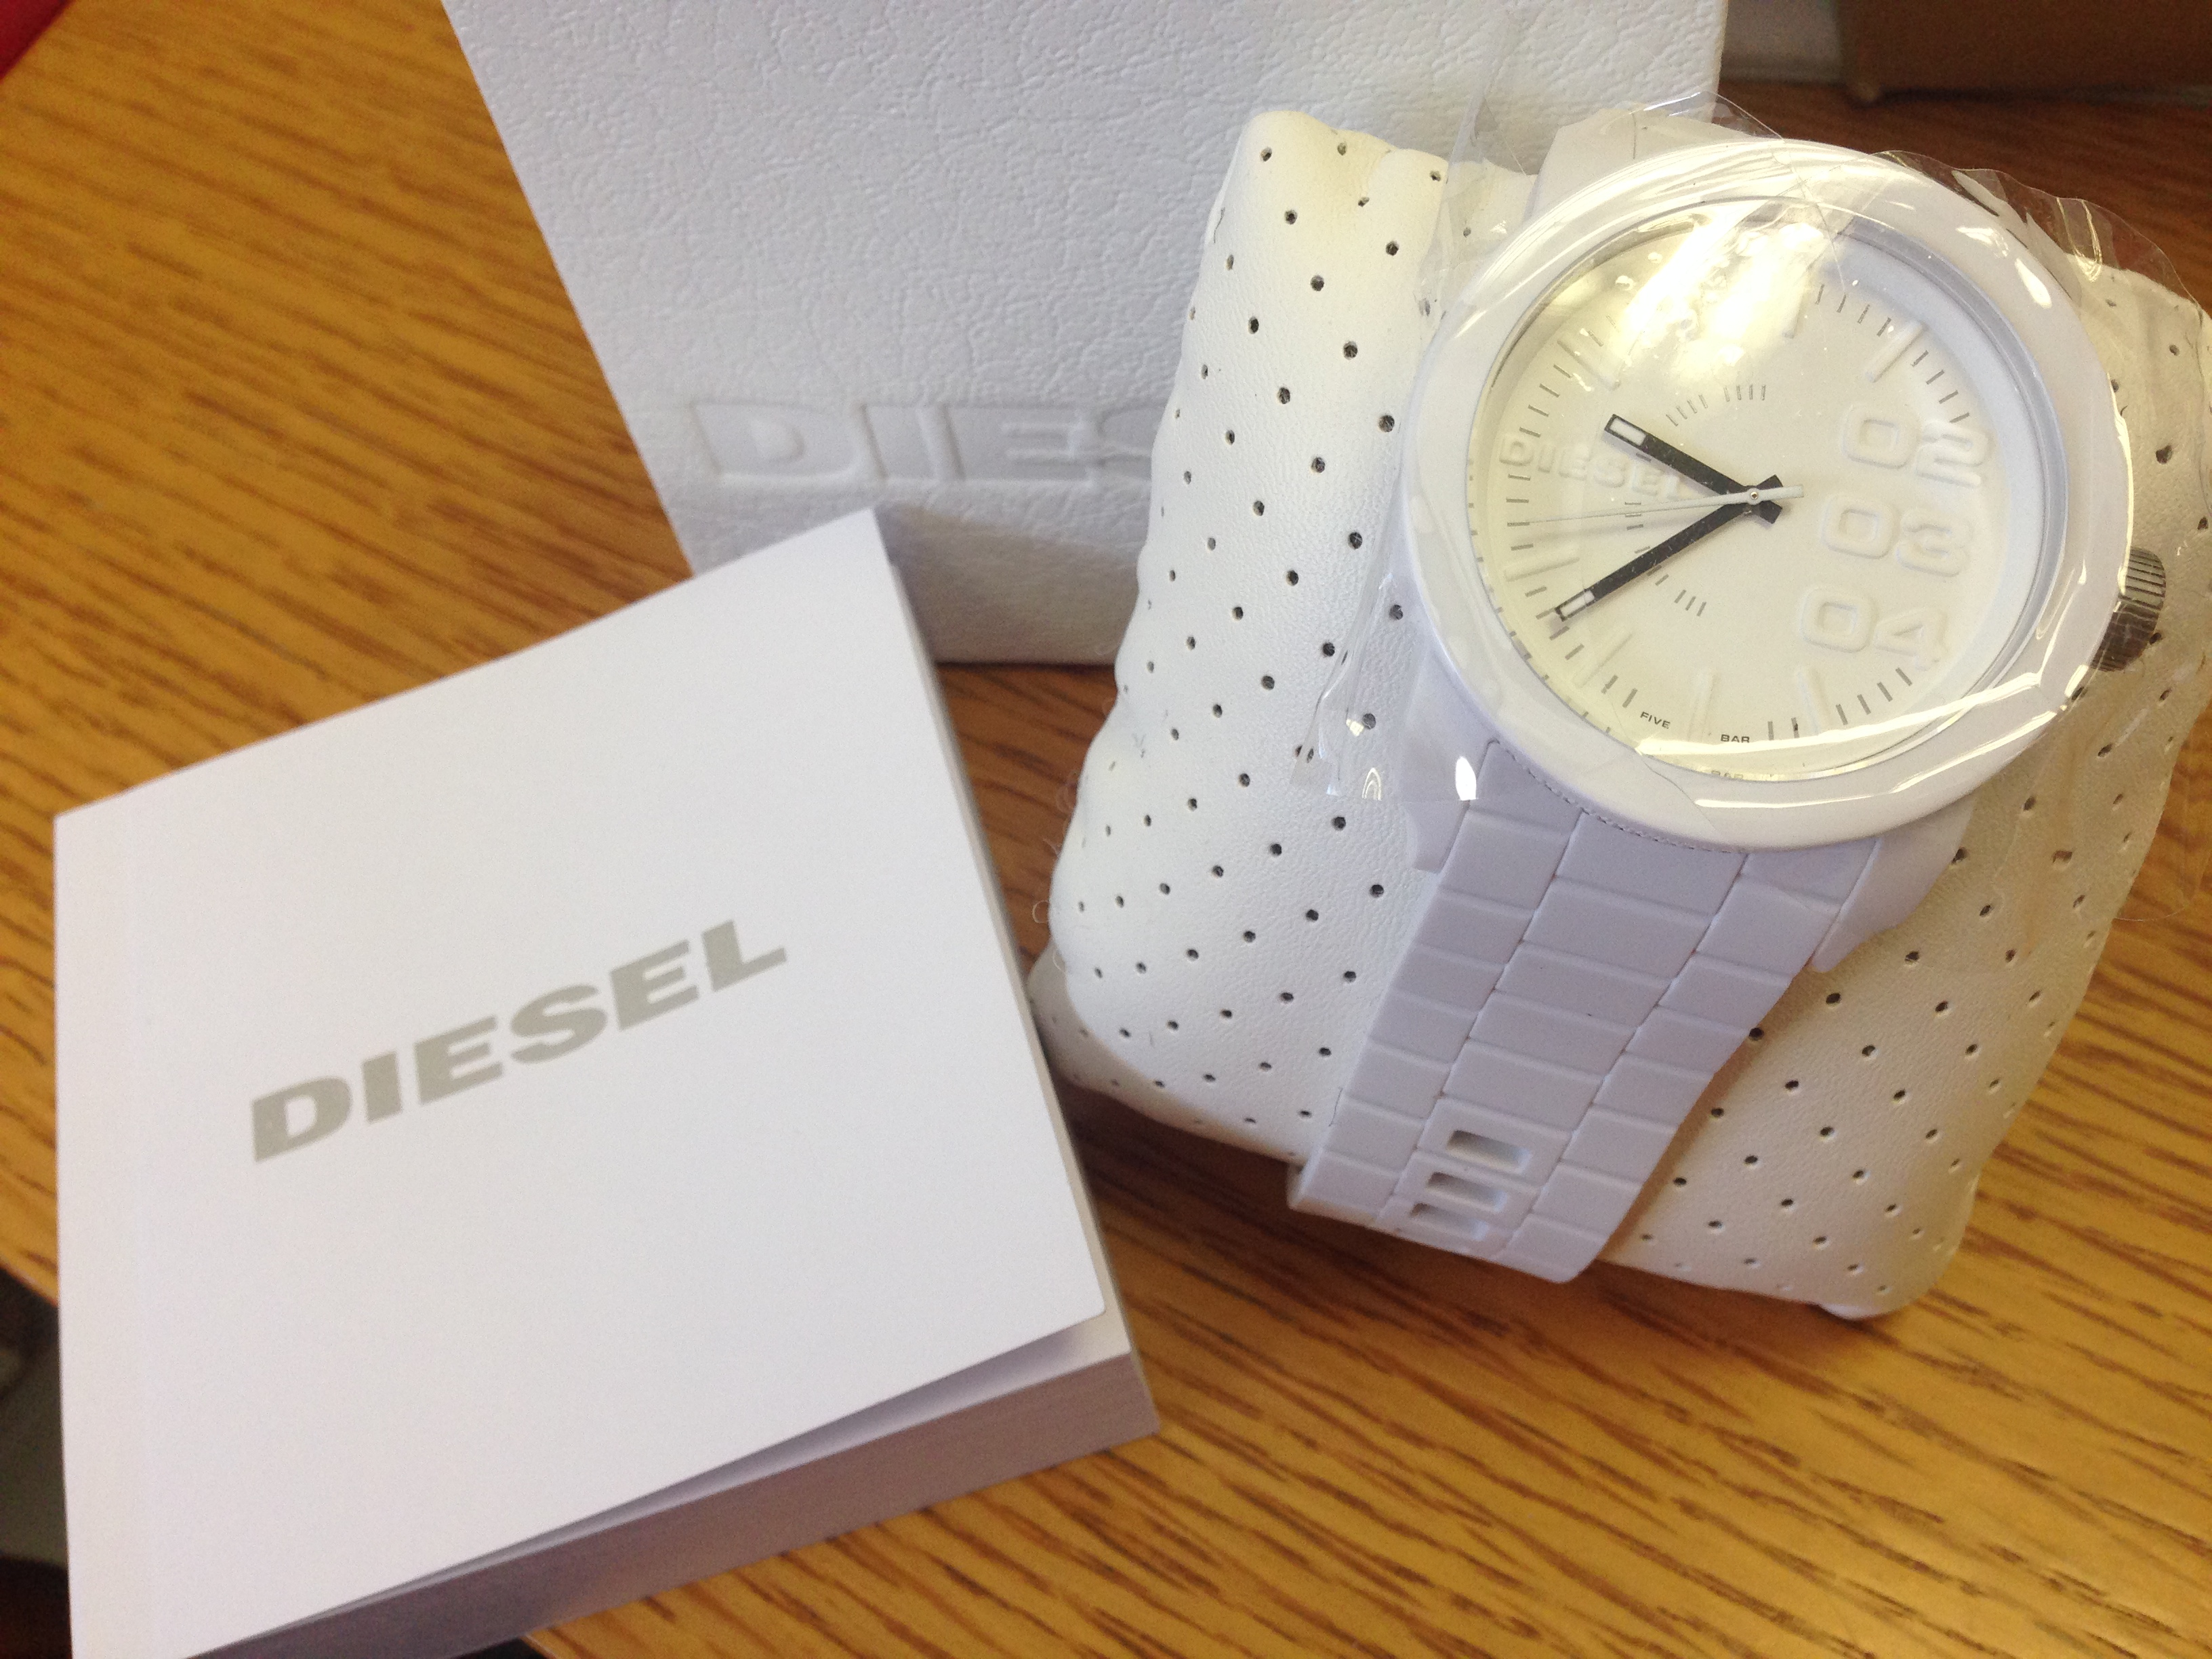 1262fd764664 I purchased the Unisex Diesel Franchise Silicone Watch yesterday morning  and to my delight it arrived today. Generally